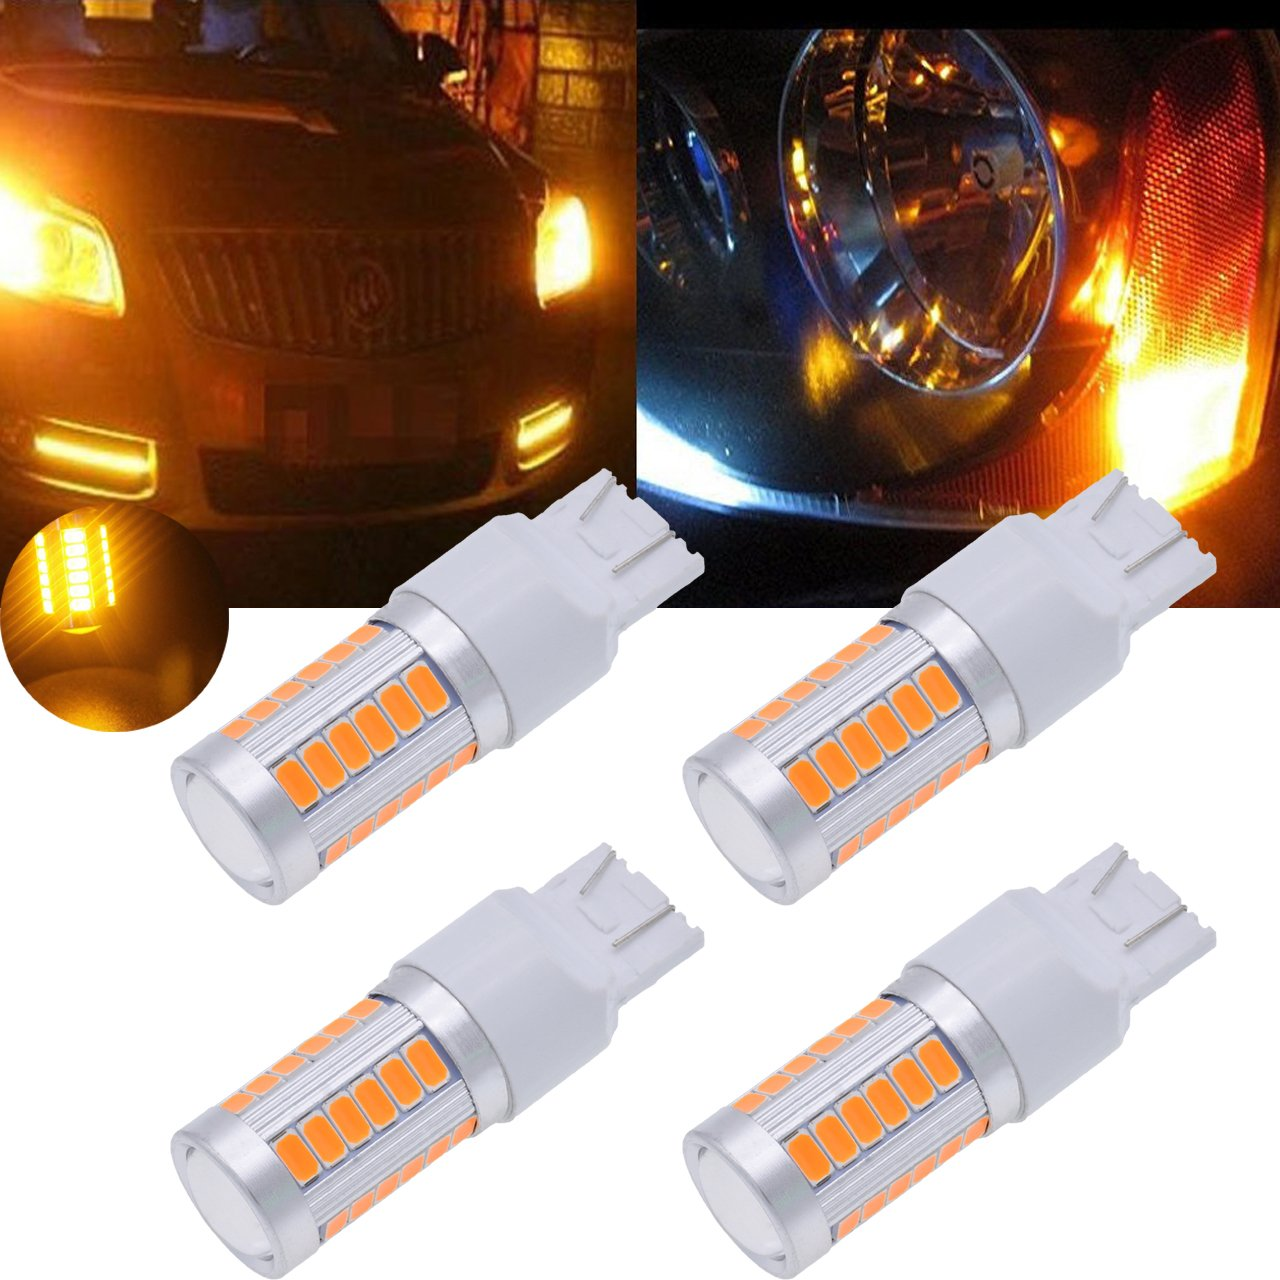 TUINCYN 7440NA, 7441, 992, T20 LED Bulbs Amber Yellow 900 Lumens Super Bright Turn Signals Light Brake Stop Parking Light Back Up Reverse Light Tail Light Bulb DC 12V 3.6W (Pack of 2)